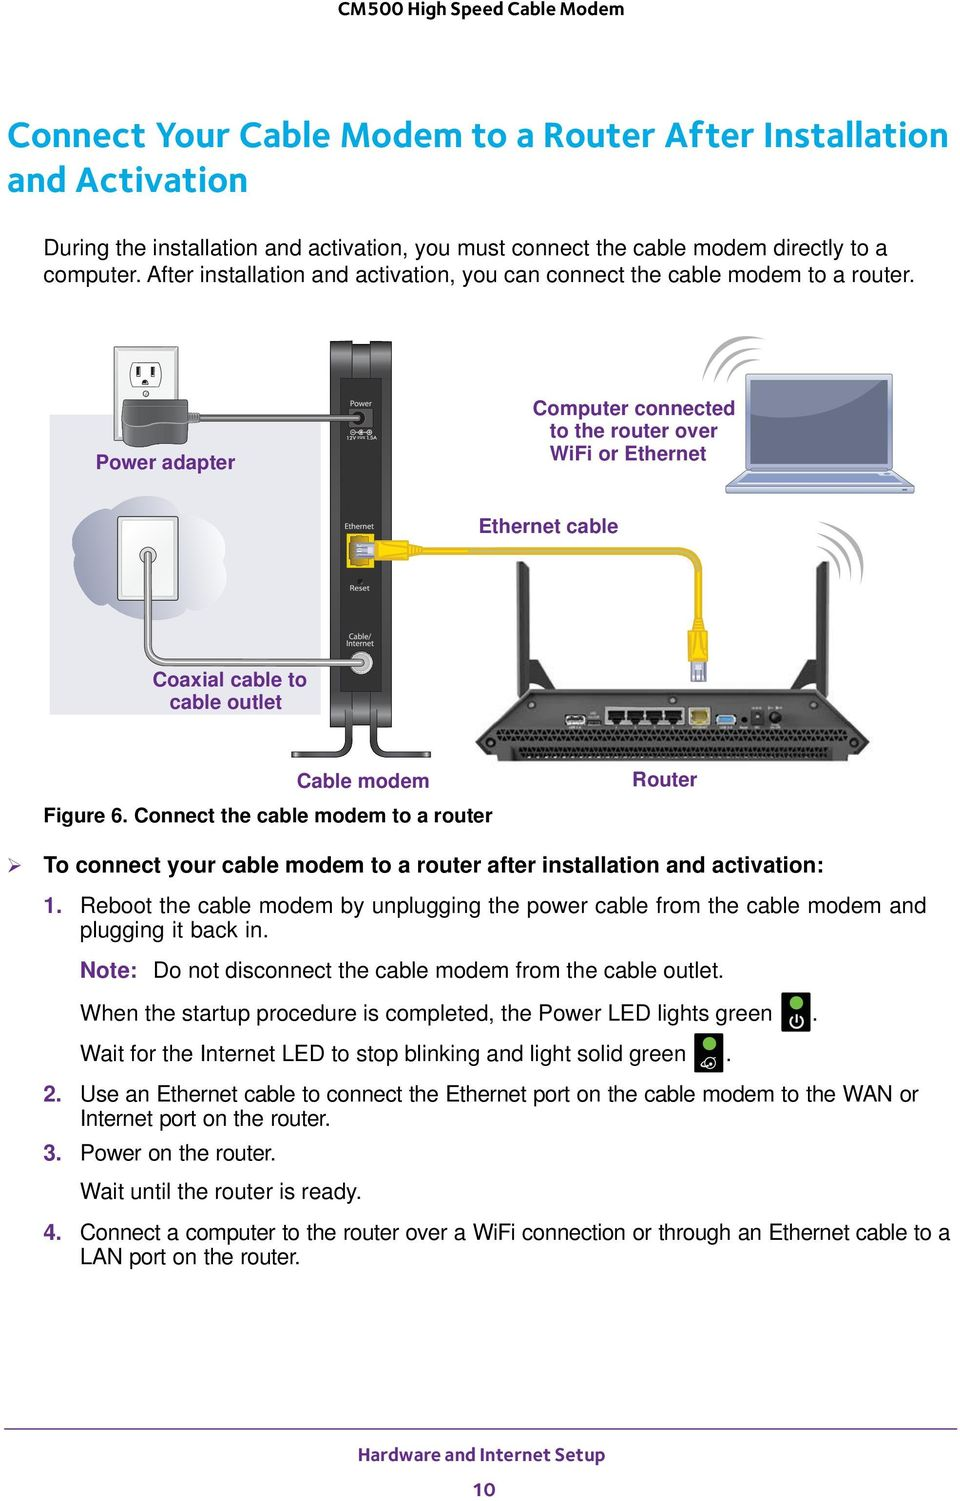 CM500 High Speed Cable Modem User Manual - PDF